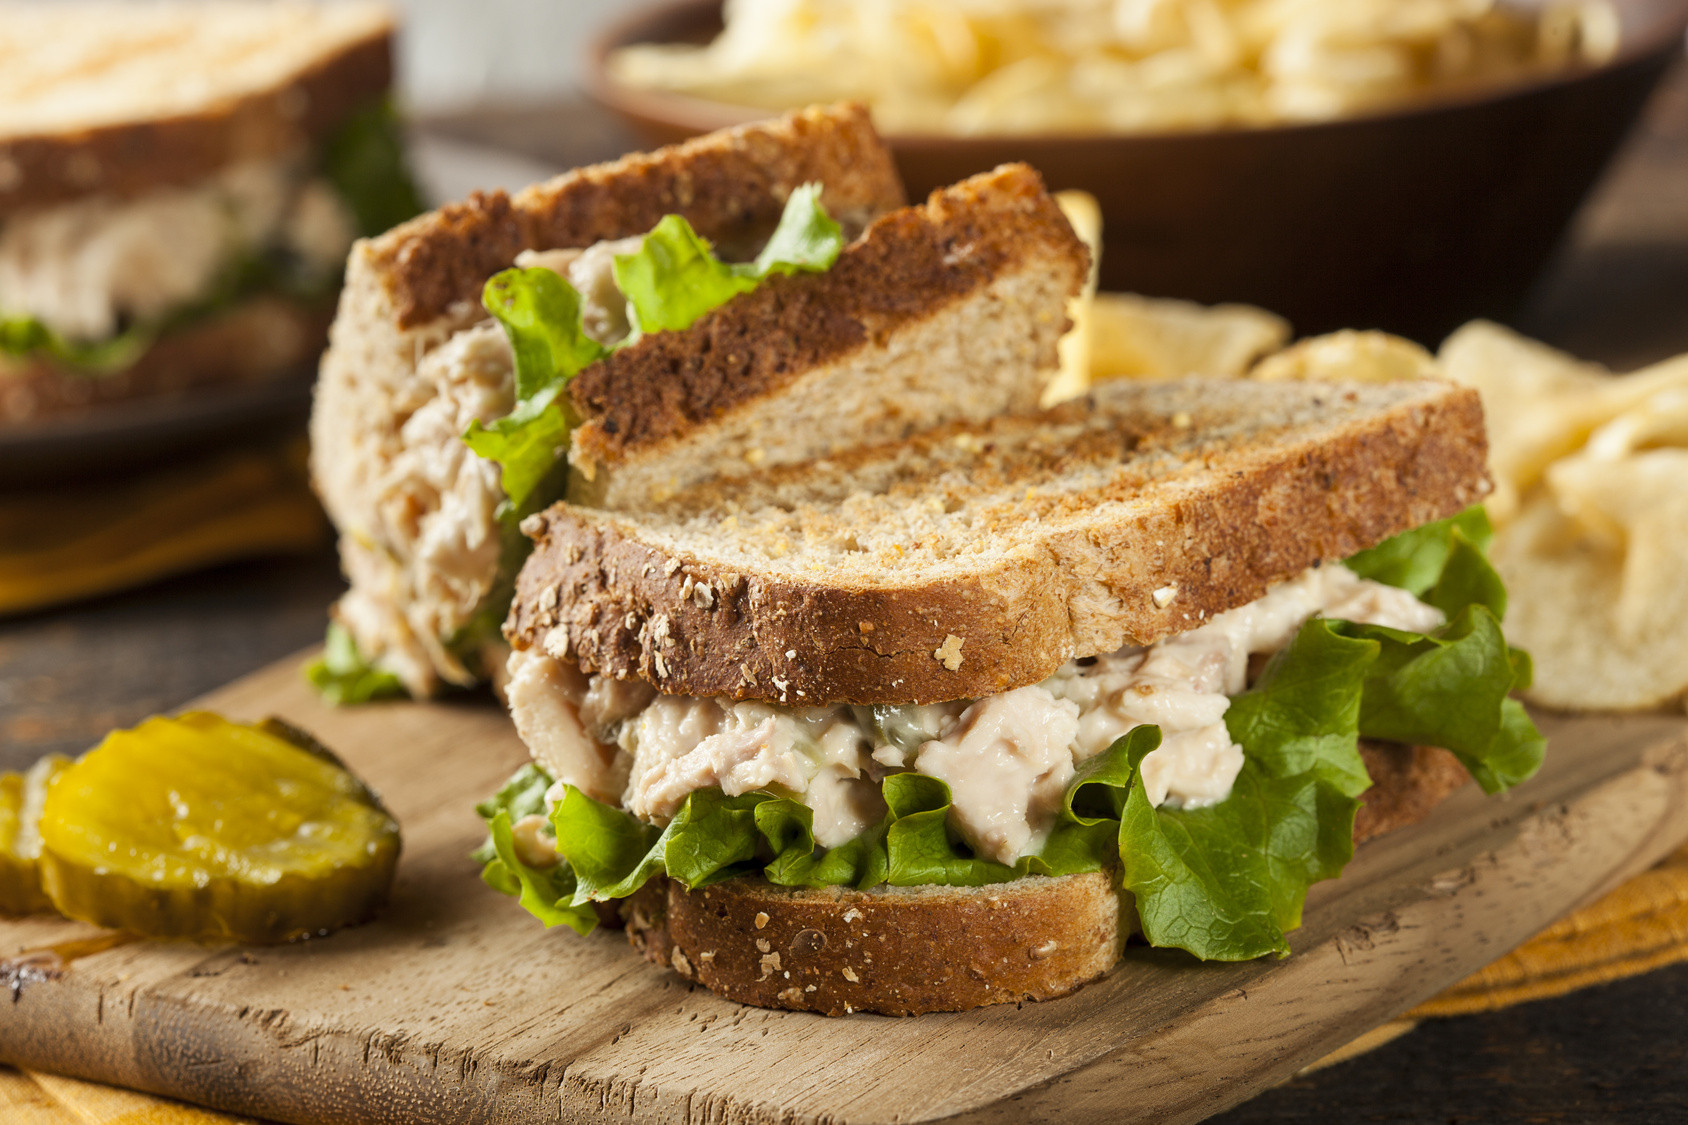 Healthy Tuna Recipes Weight Loss  Healthy Sandwiches for Weight Loss BEAUTIFUL SHOES